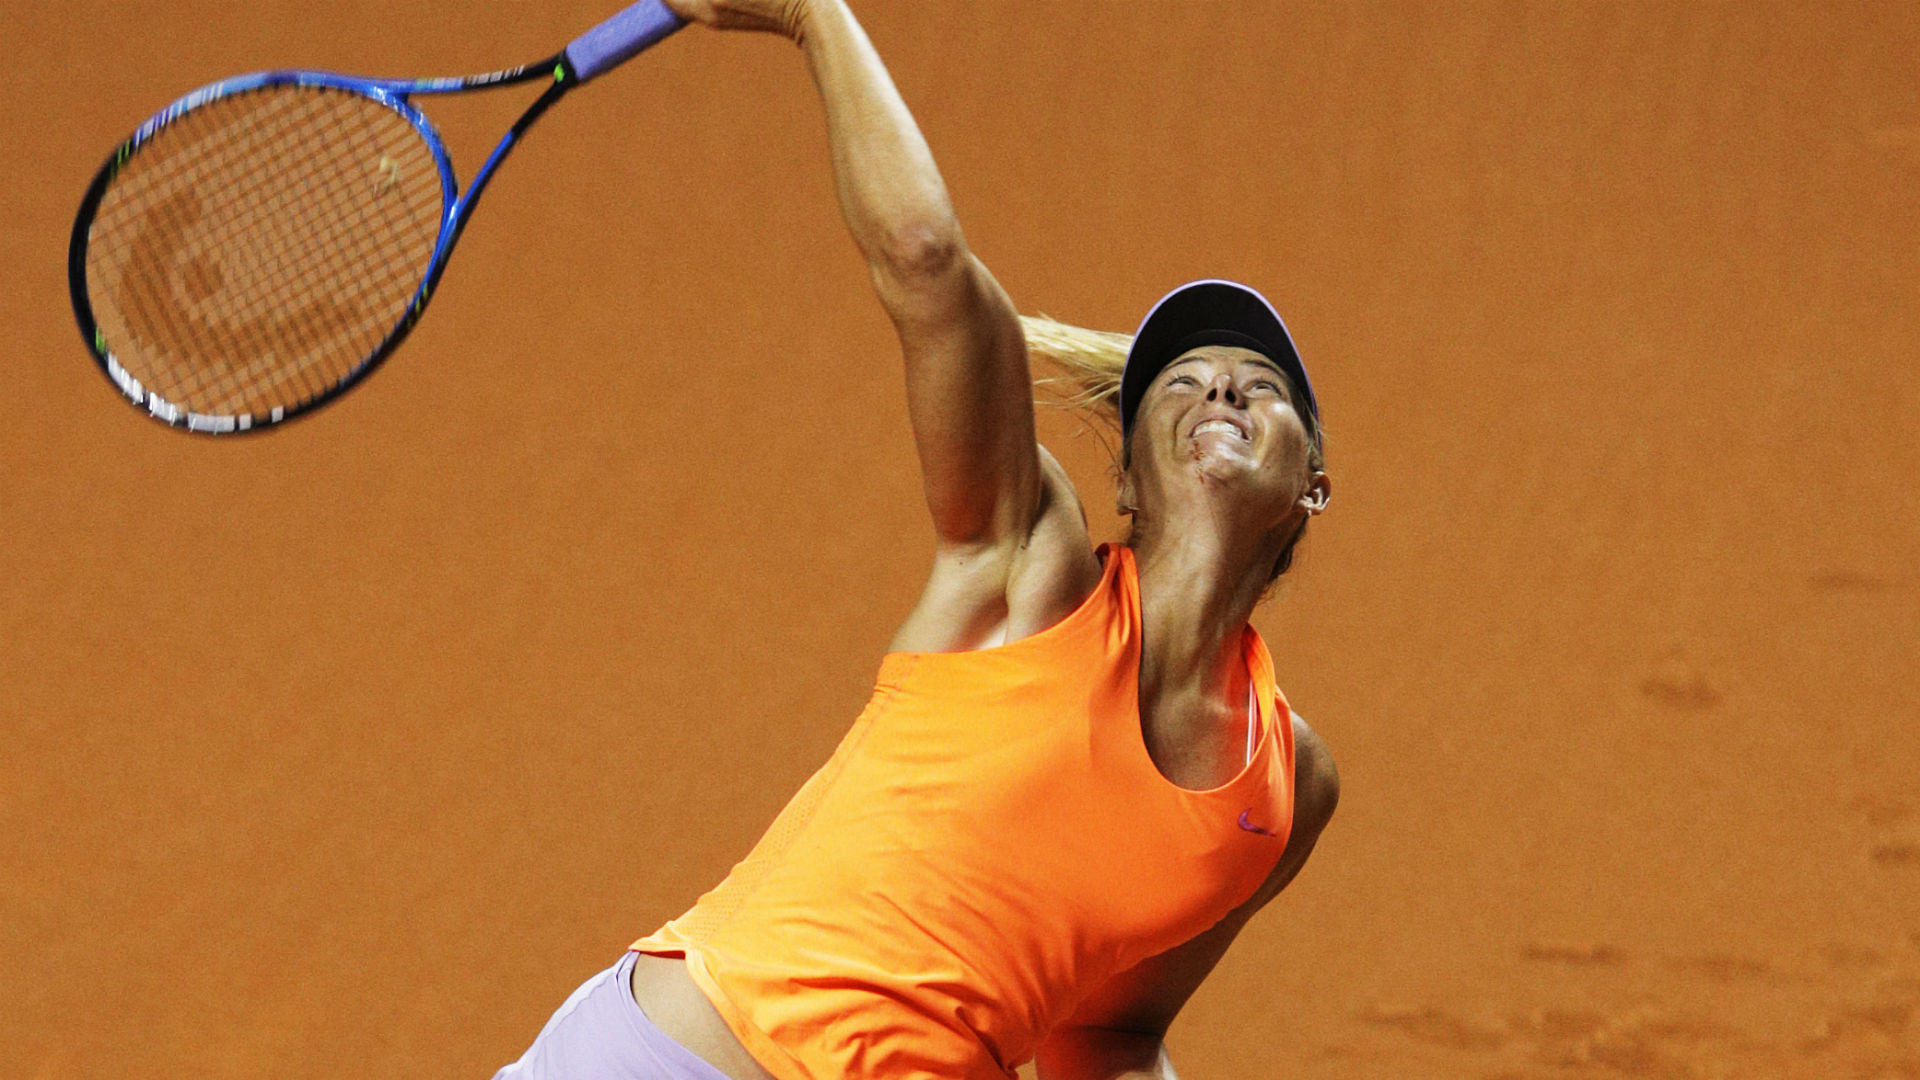 Stuttgart Open: Maria Sharapova on WTA Tour return ...